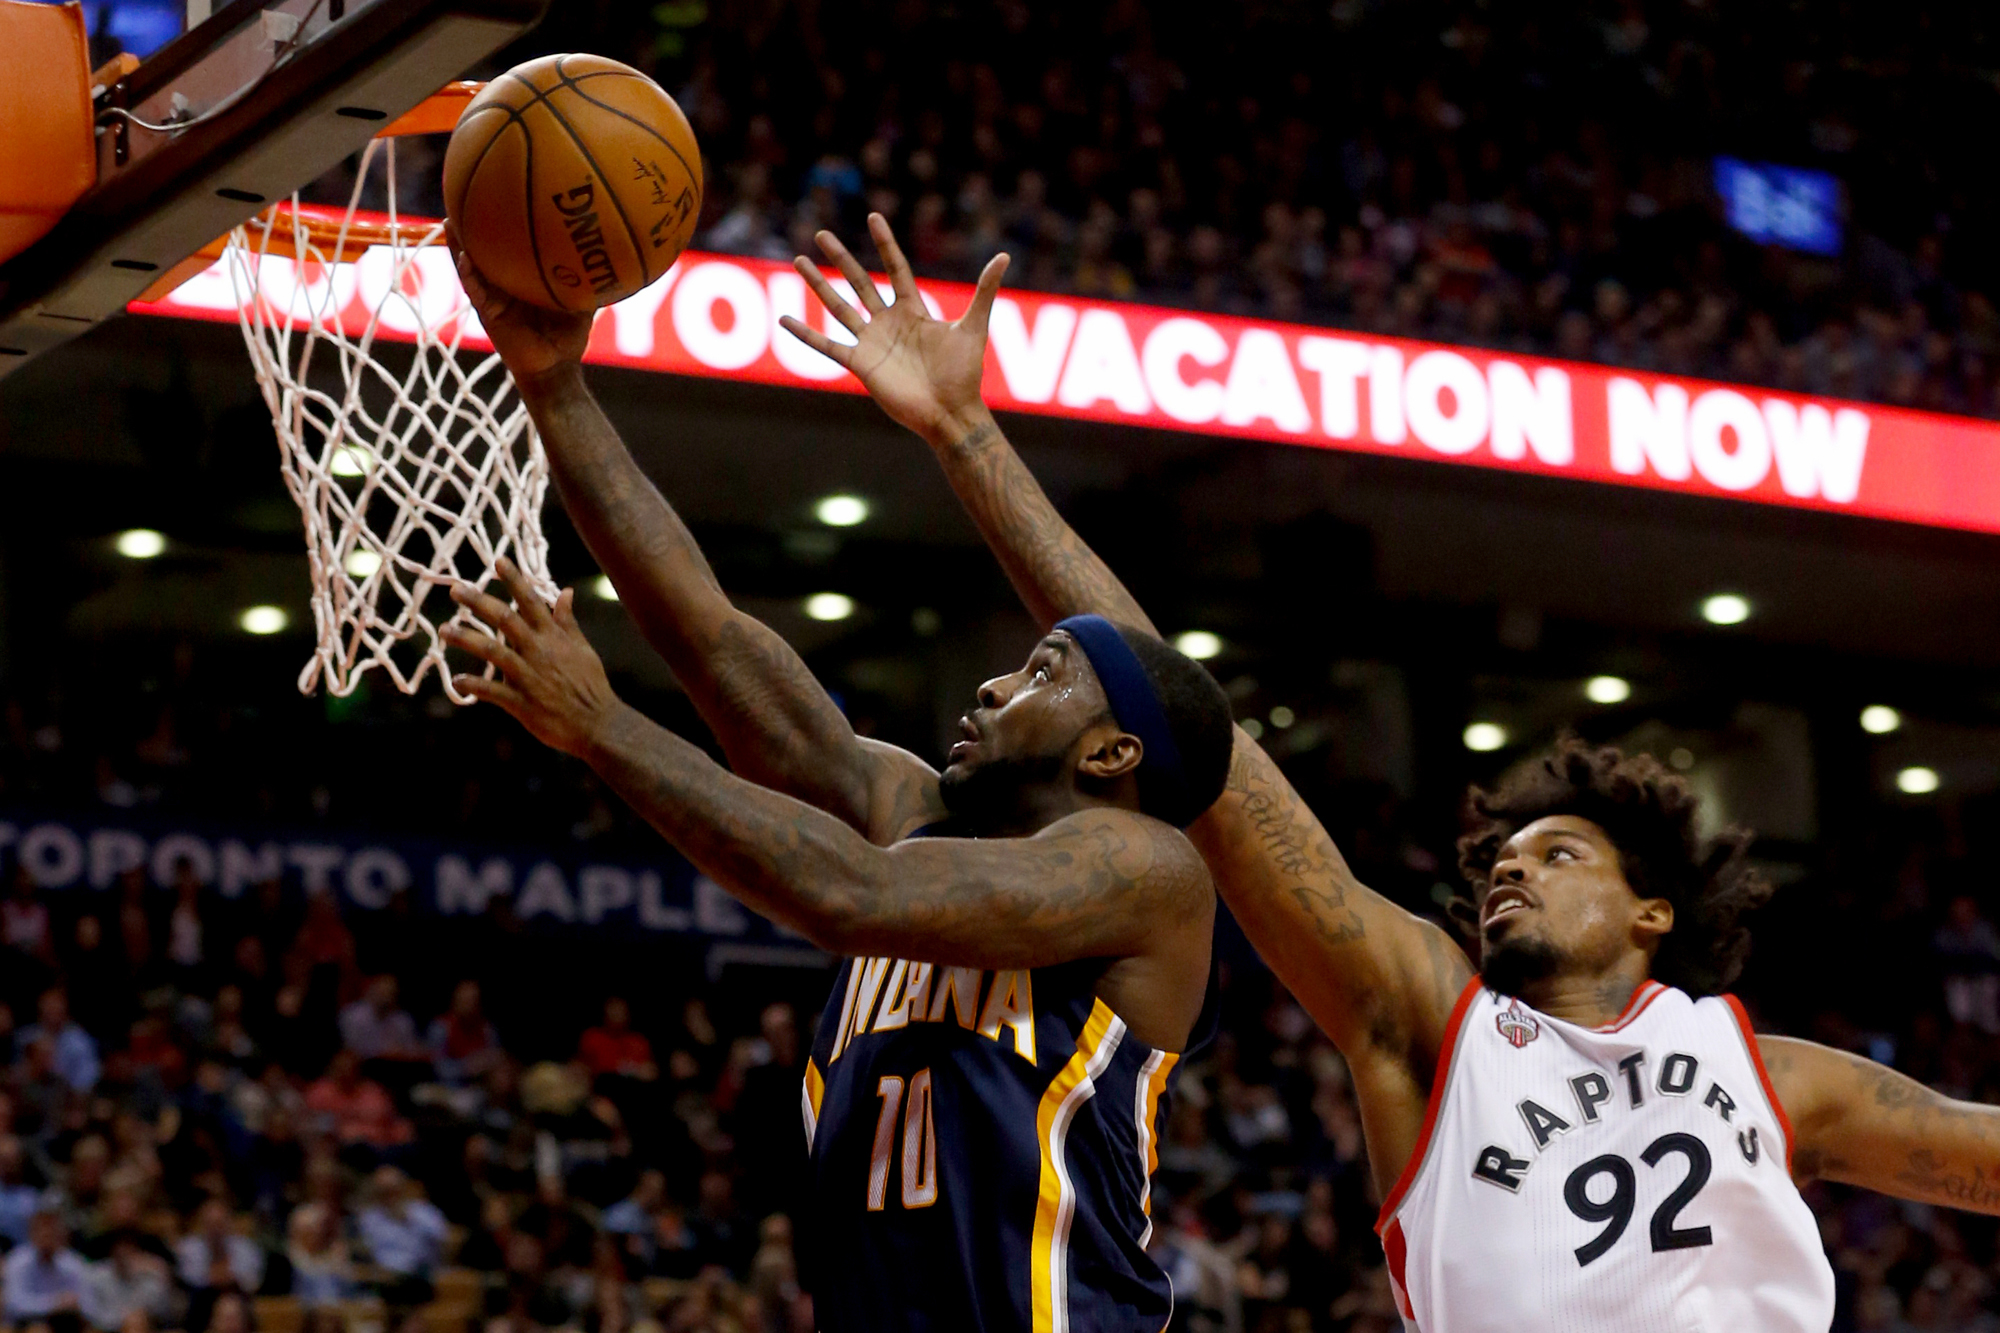 Indiana Pacers guard Ty Lawson (10) beats Toronto Raptors center Lucas Nogueira (92) for a lay up. Toronto Raptors vs Indiana Pacers in 2nd half action of NBA regular season play at Air Canada Centre.